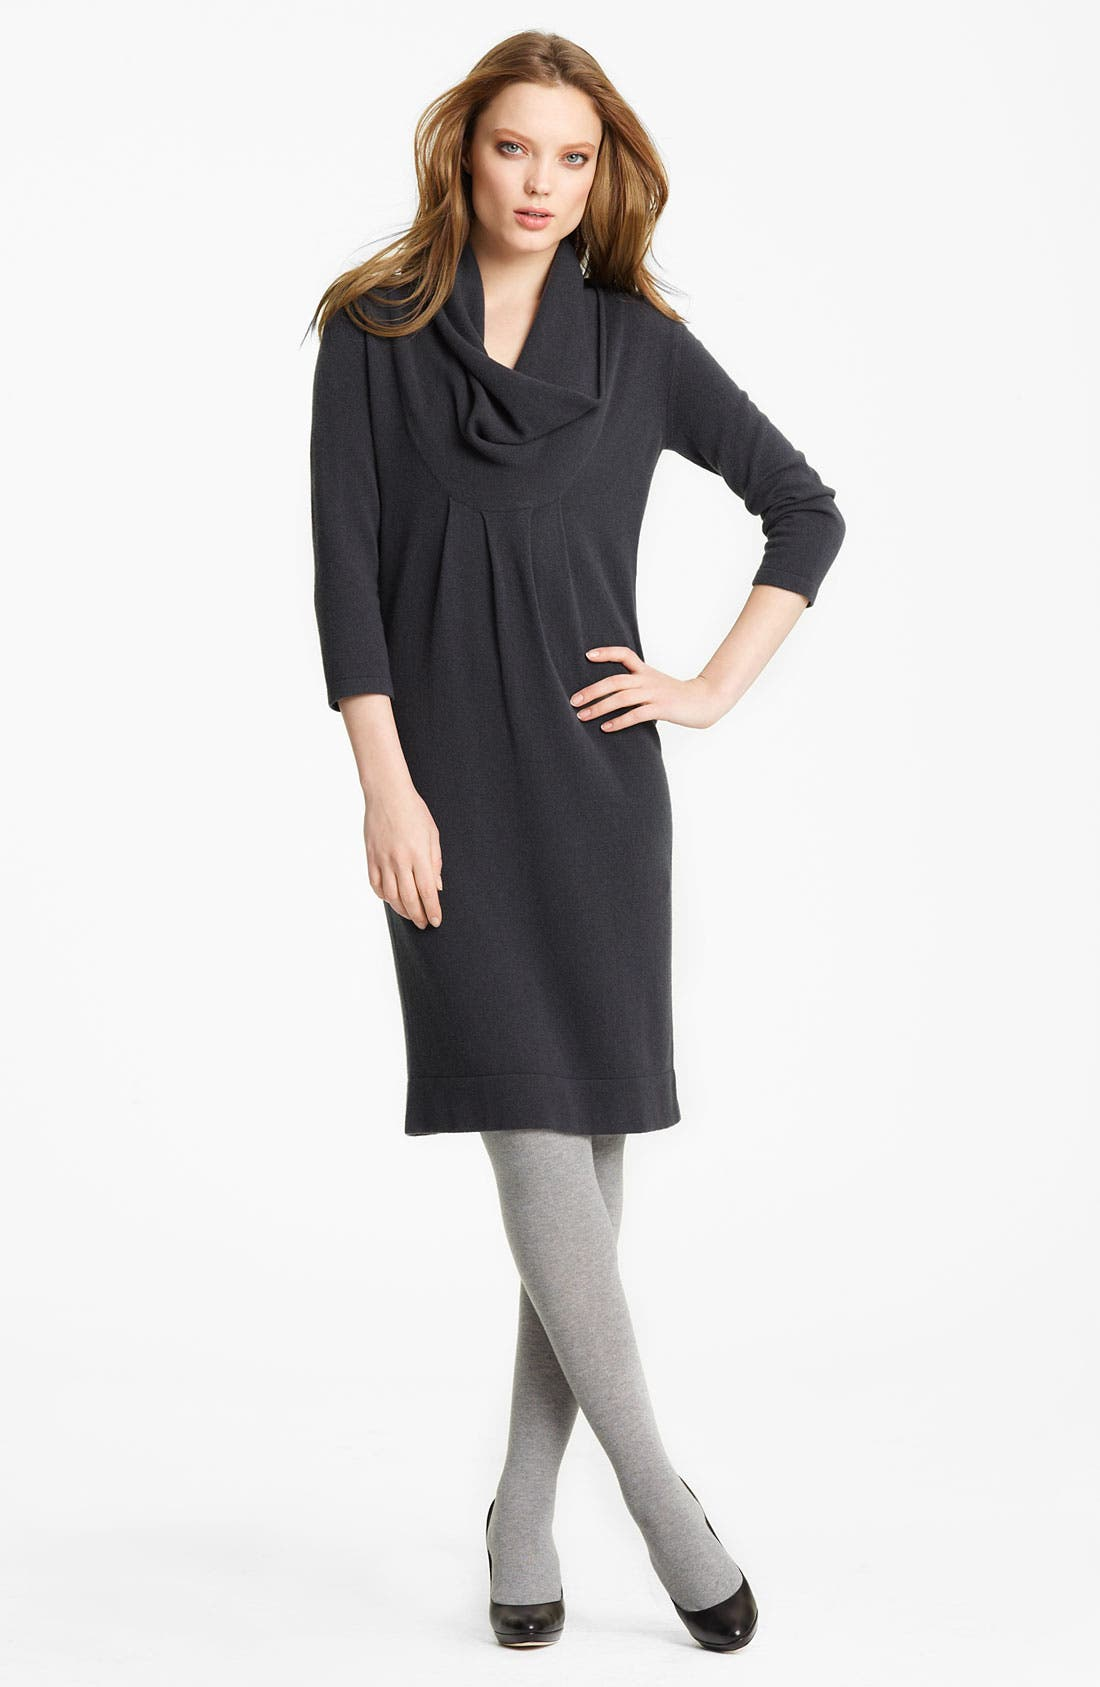 Alternate Image 1 Selected - Fabiana Filippi Cowl Neck Knit Dress